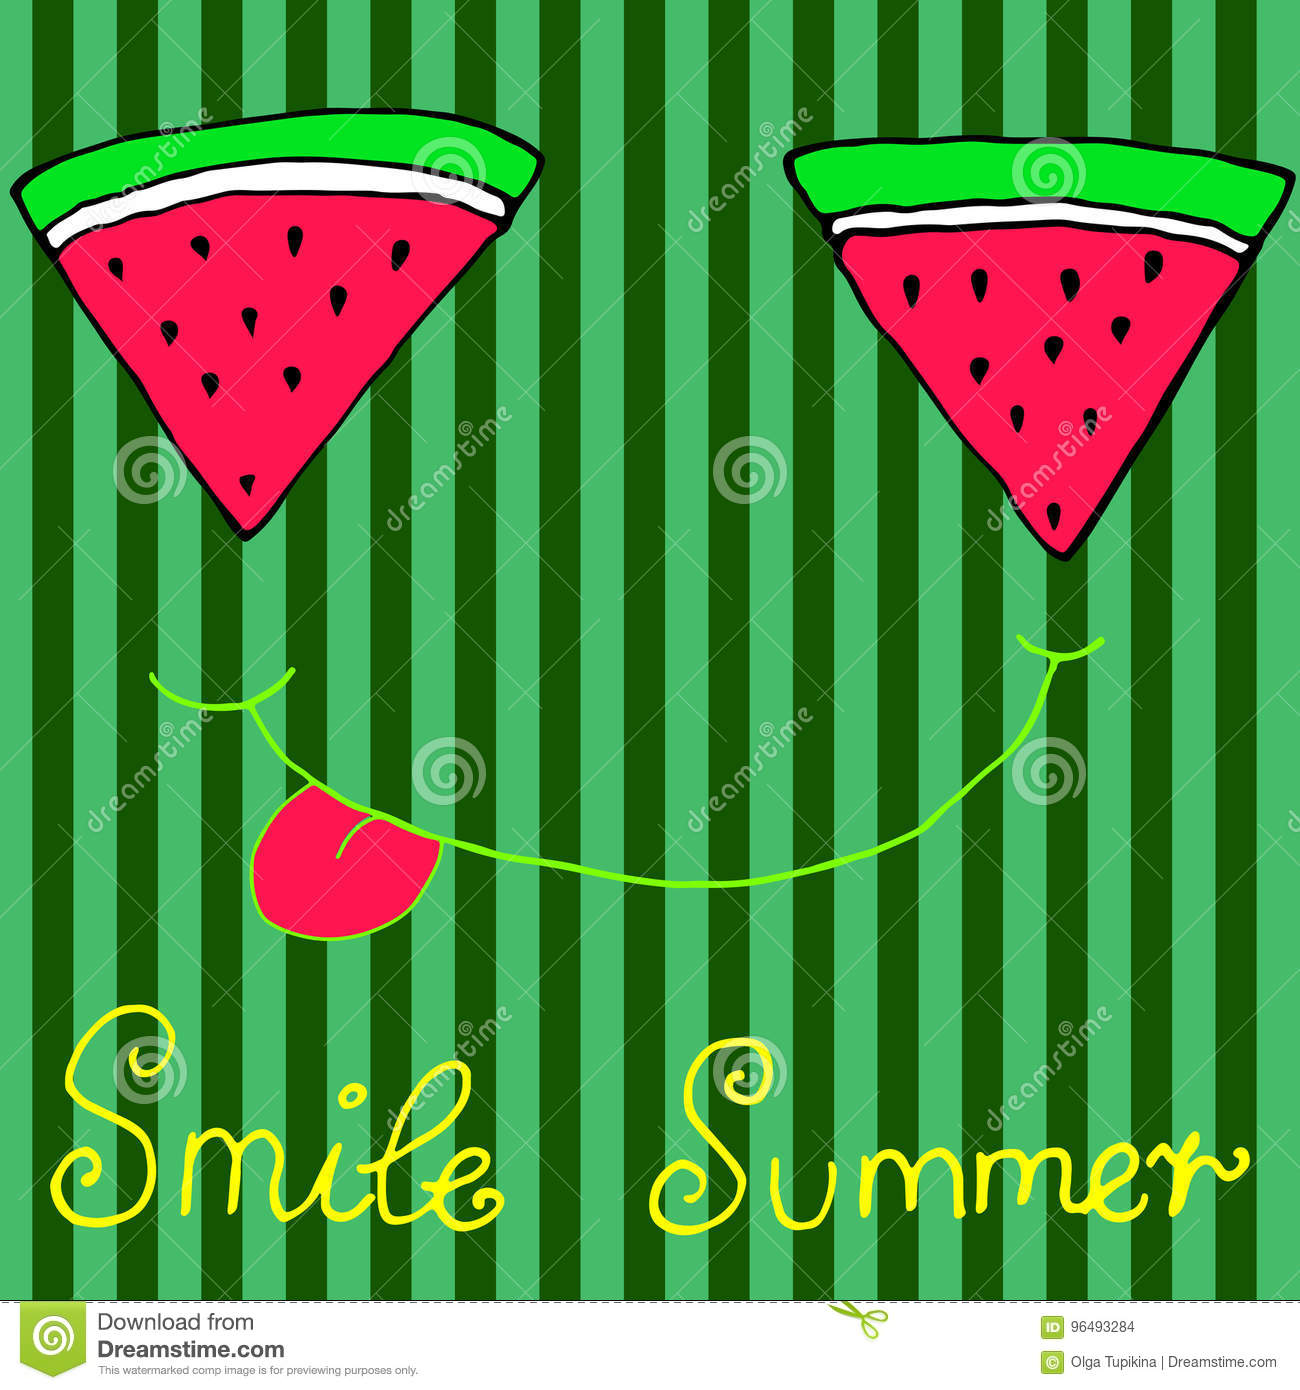 Joyful sliced watermelon slices, smiling showing tongue, isolate